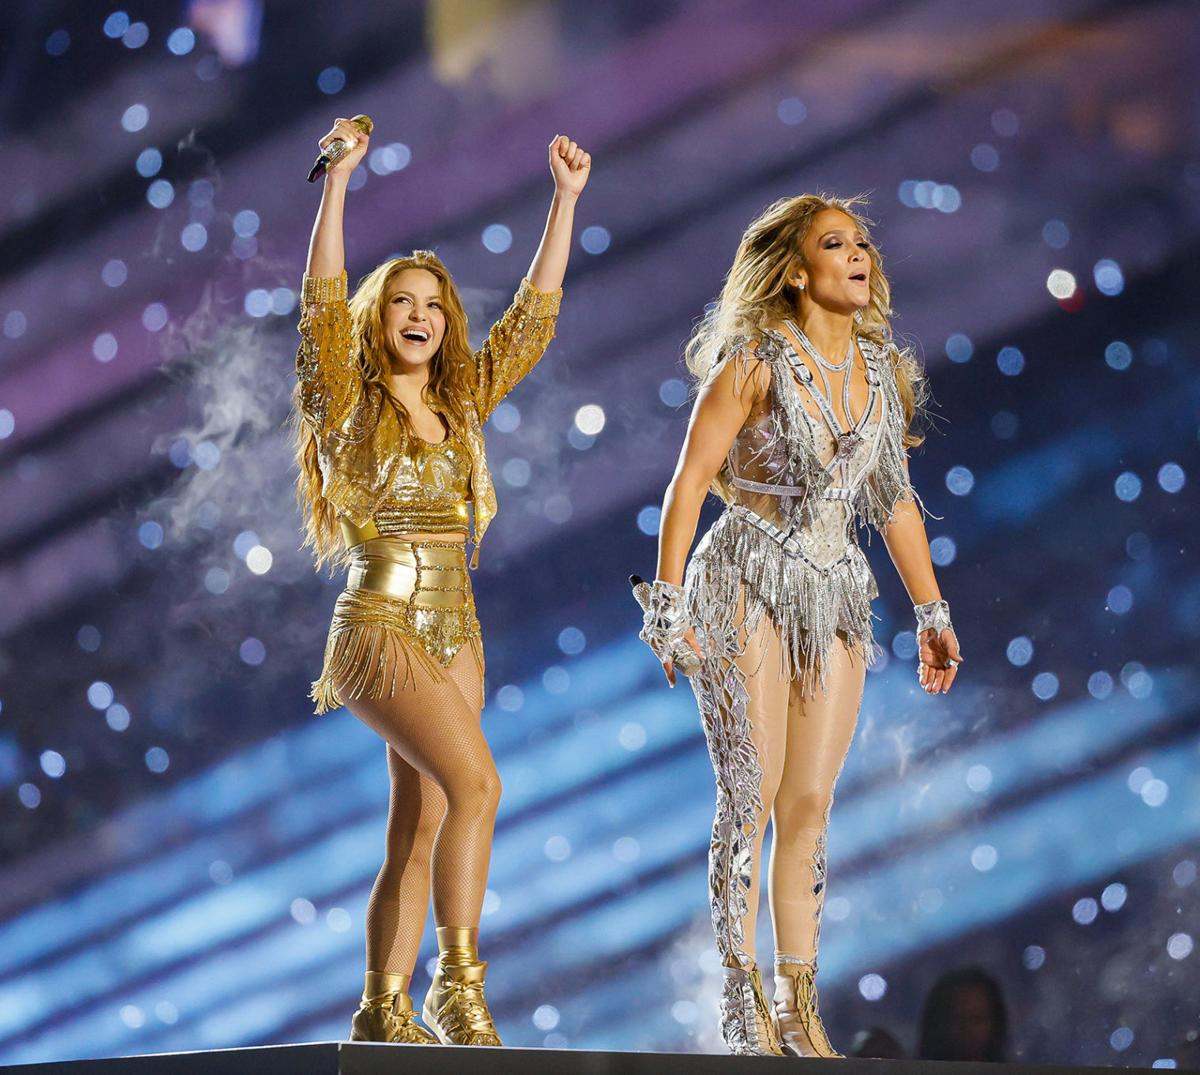 Shakira and Jennifer Lopez perform during the Pepsi Super Bowl LIV Halftime Show at Hard Rock Stadium in Miami Gardens, Fla., on Sunday, Feb. 2, 2020.